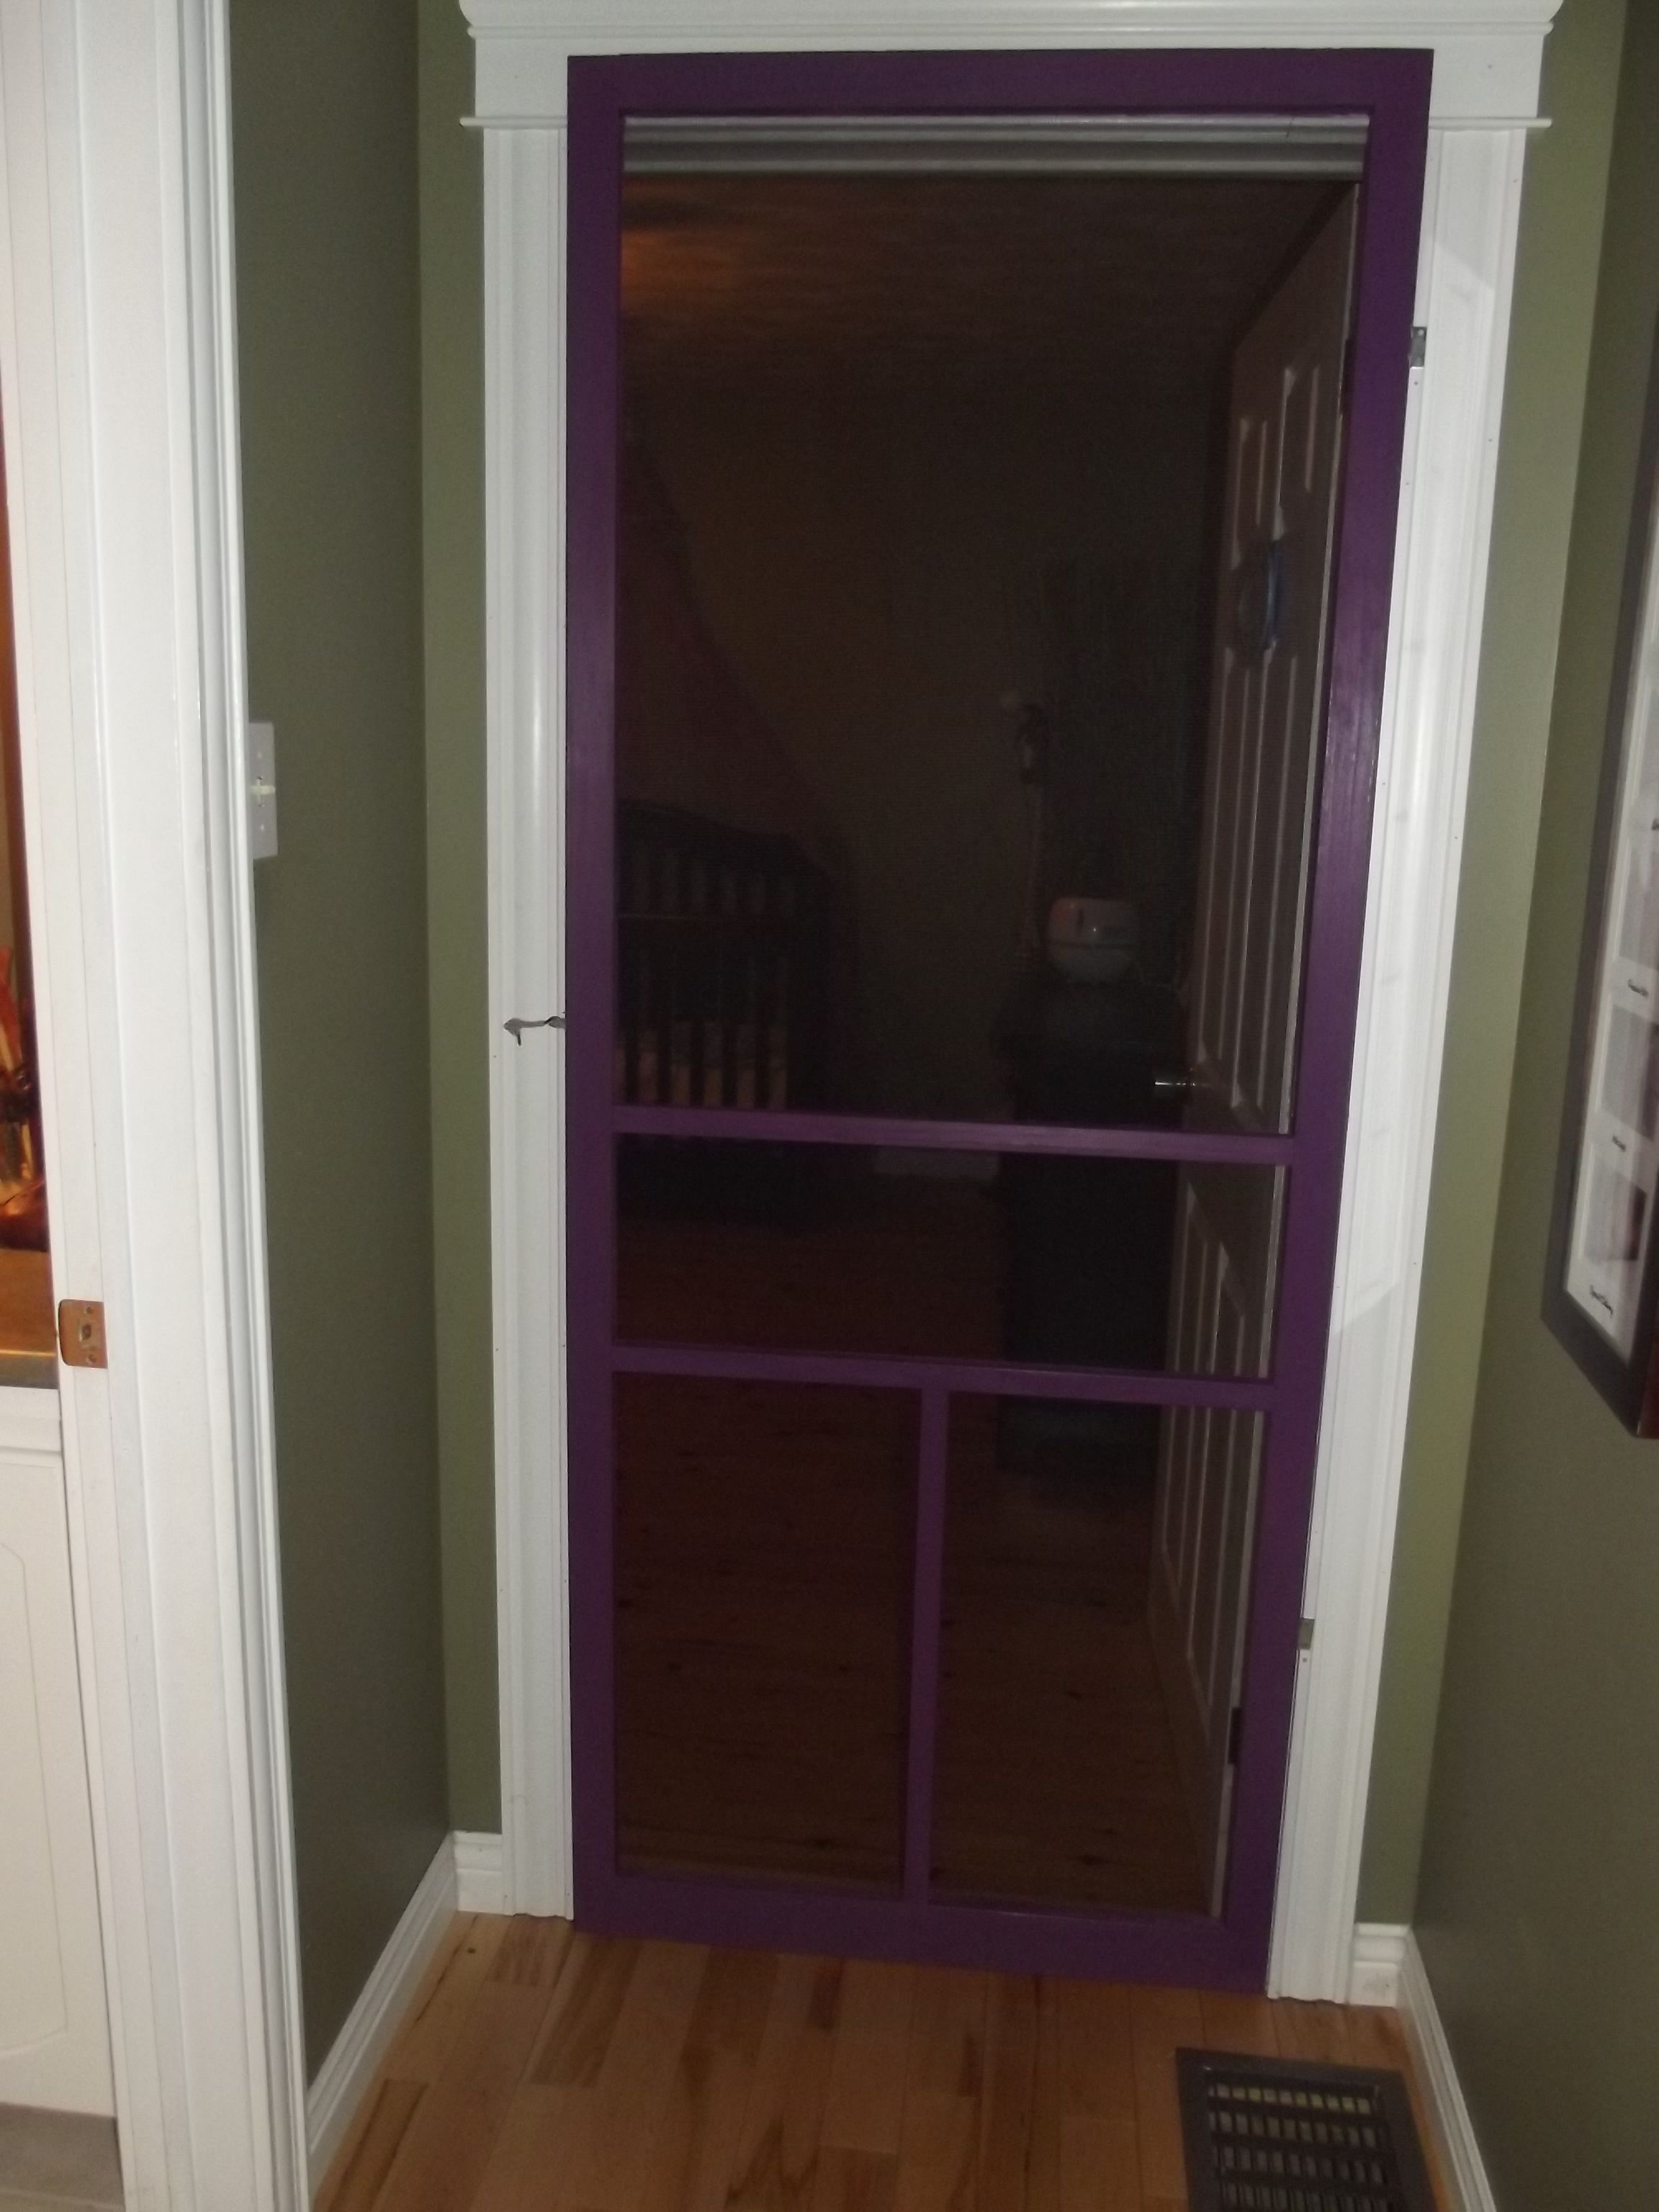 Captivating Screen Door To Keep Pets Out Of Babyu0027s Room. And A Makeshift Gate To Keep  Toddler In Room For Time Outs And/or Switching To Toddler Bed And Still Be  Able To ...